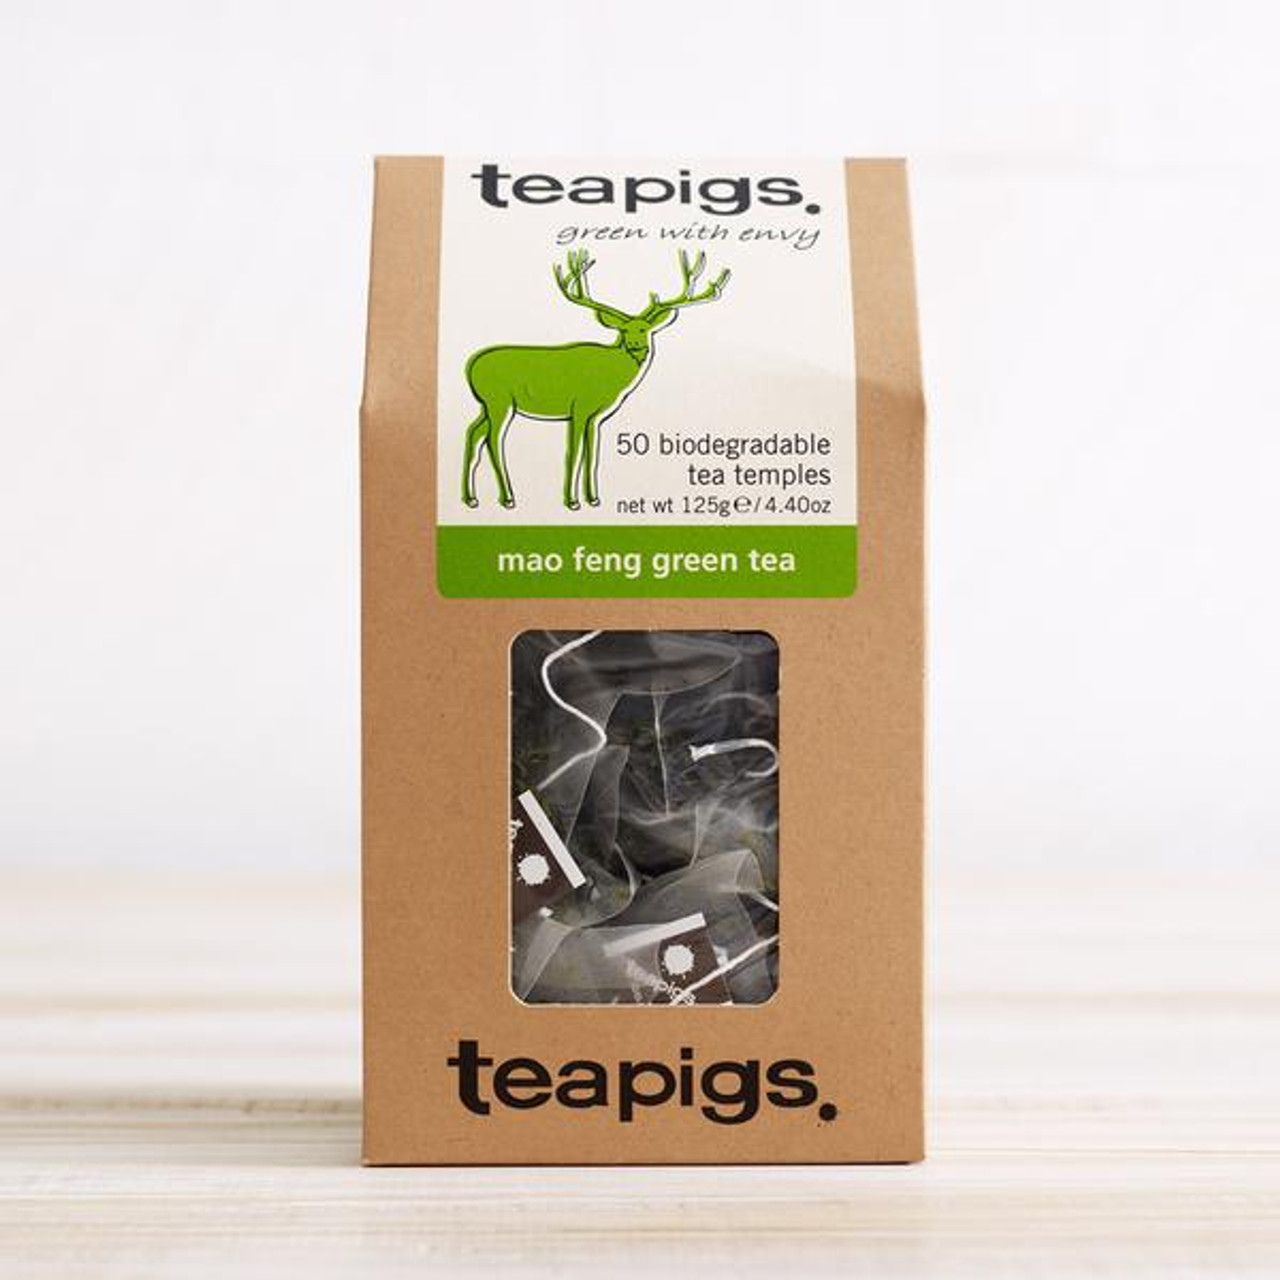 TEA PIGS MAO FENG GREEN TEA x 50 TEA TEMPLES